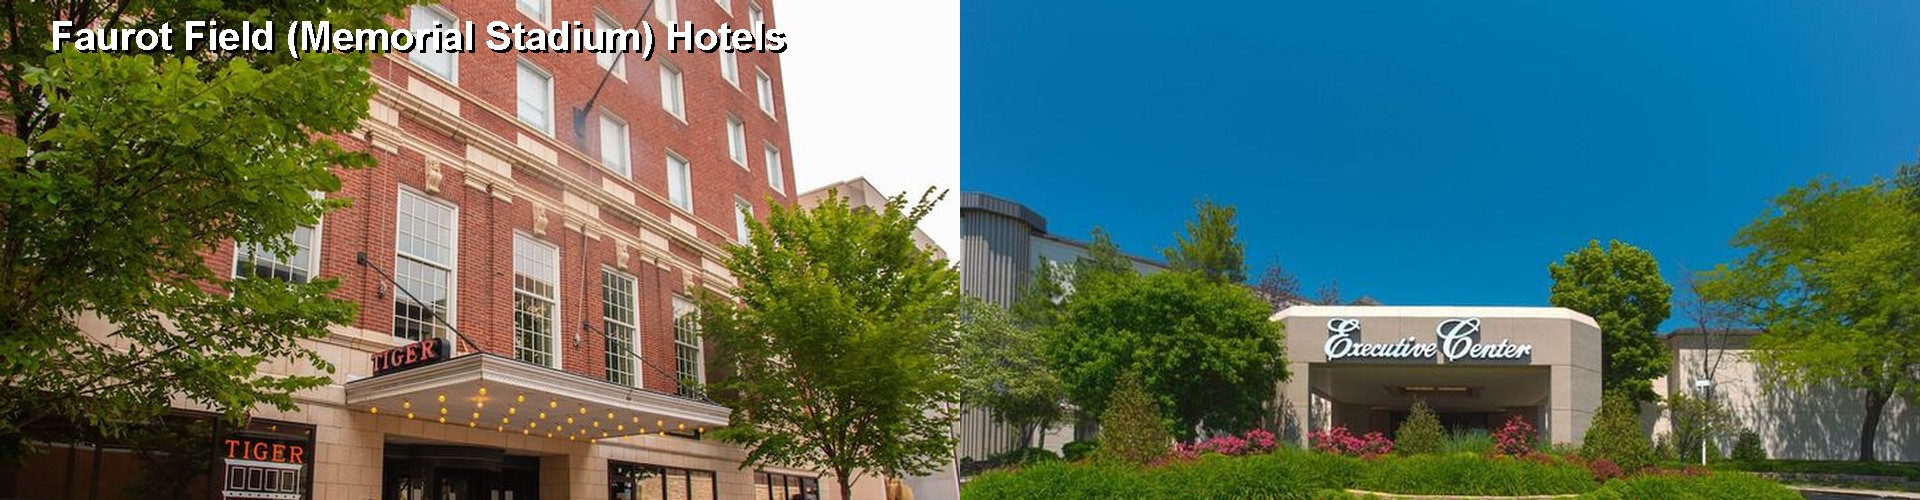 5 Best Hotels near Faurot Field (Memorial Stadium)